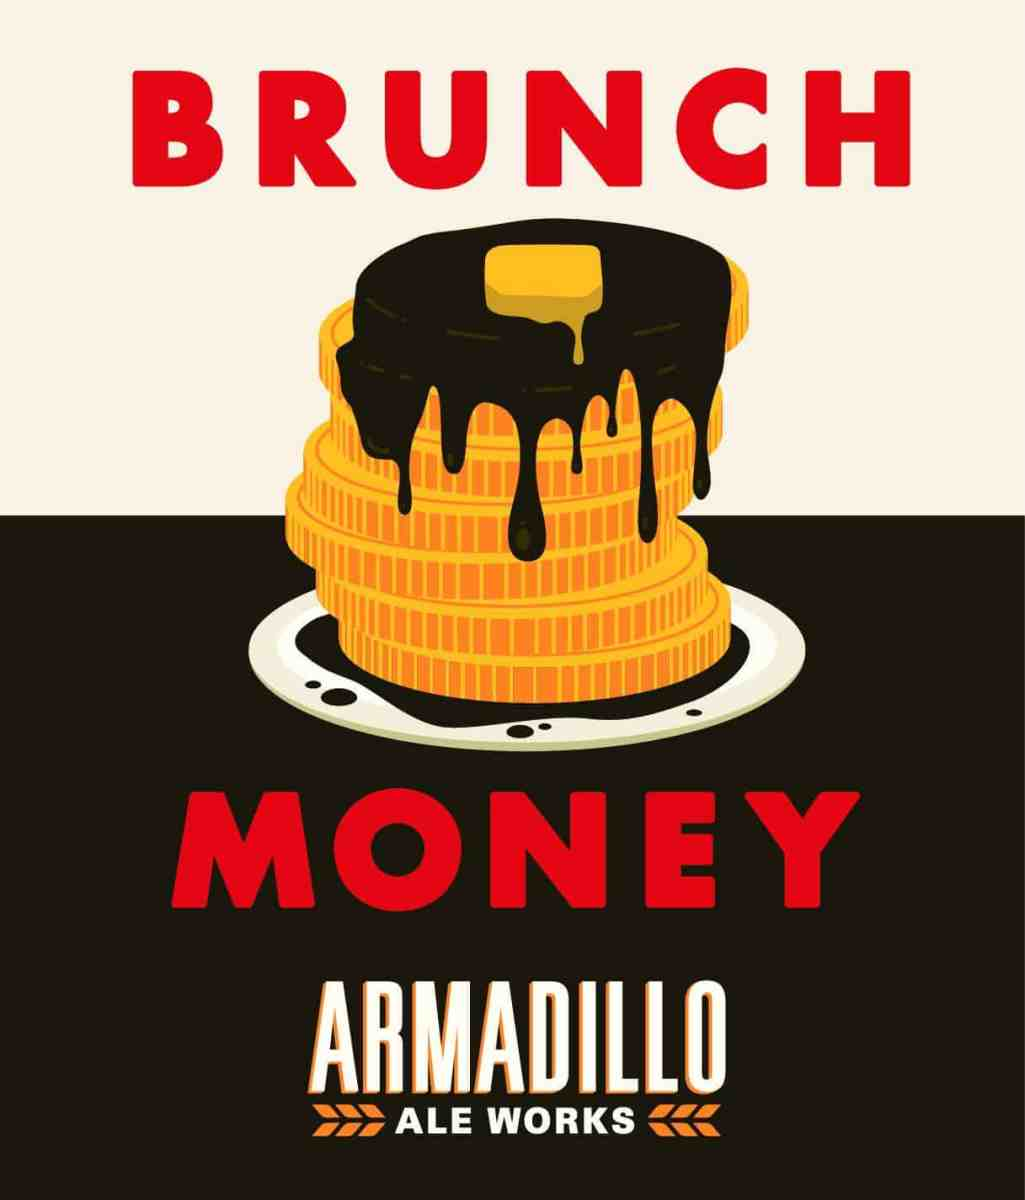 Armadillo Ale Works gives you Brunch Money